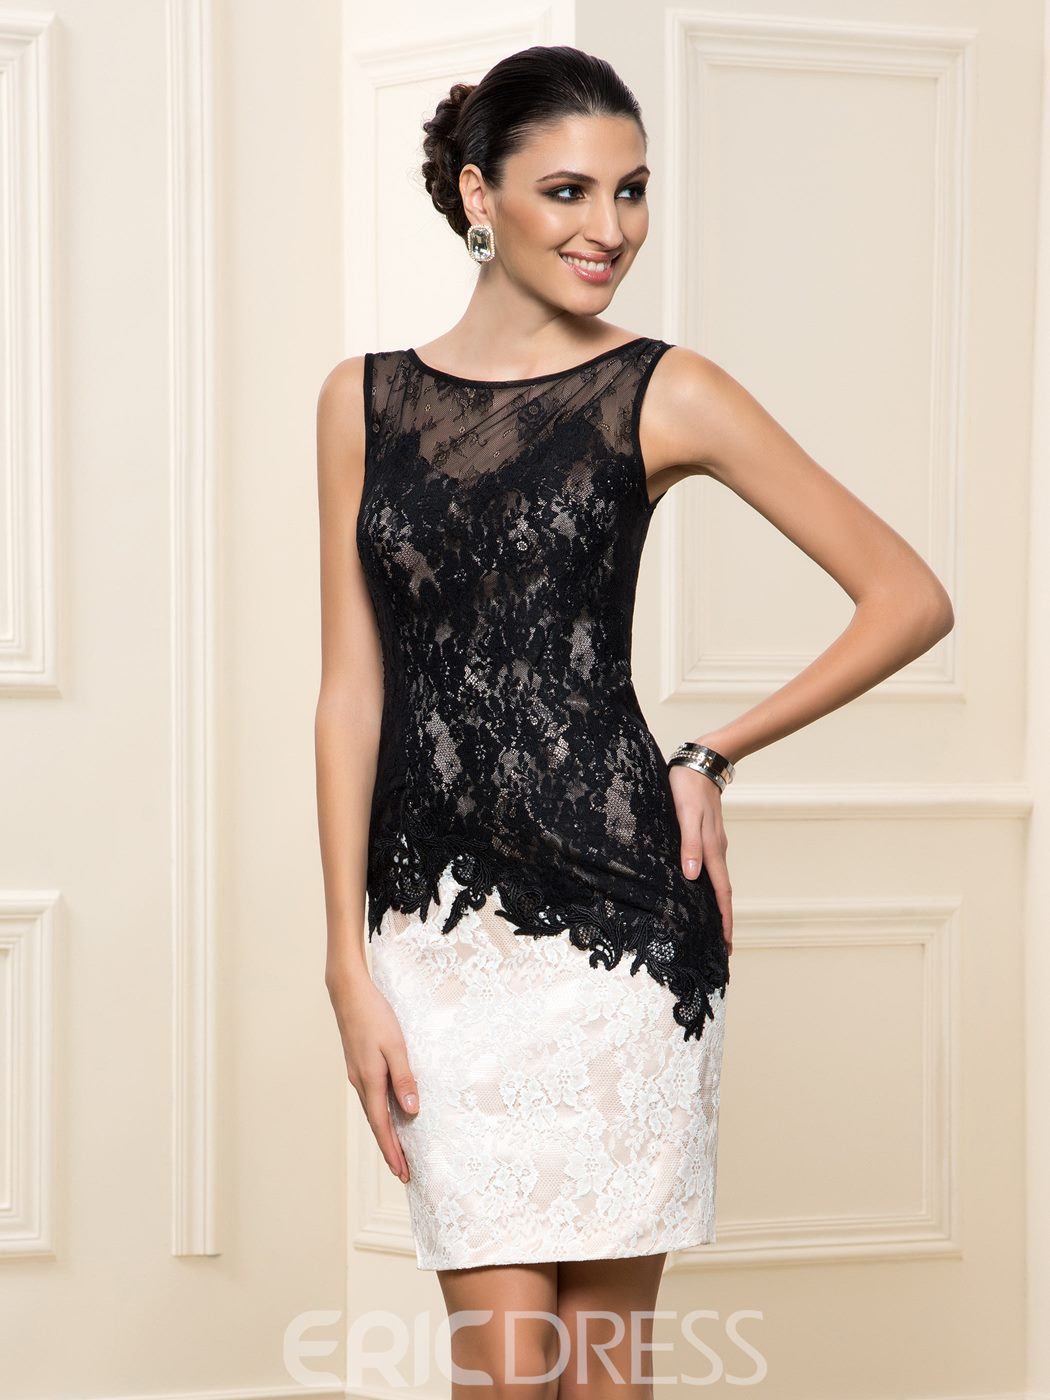 Ericdress Sheath Scoop Neck Lace Cocktail Dres